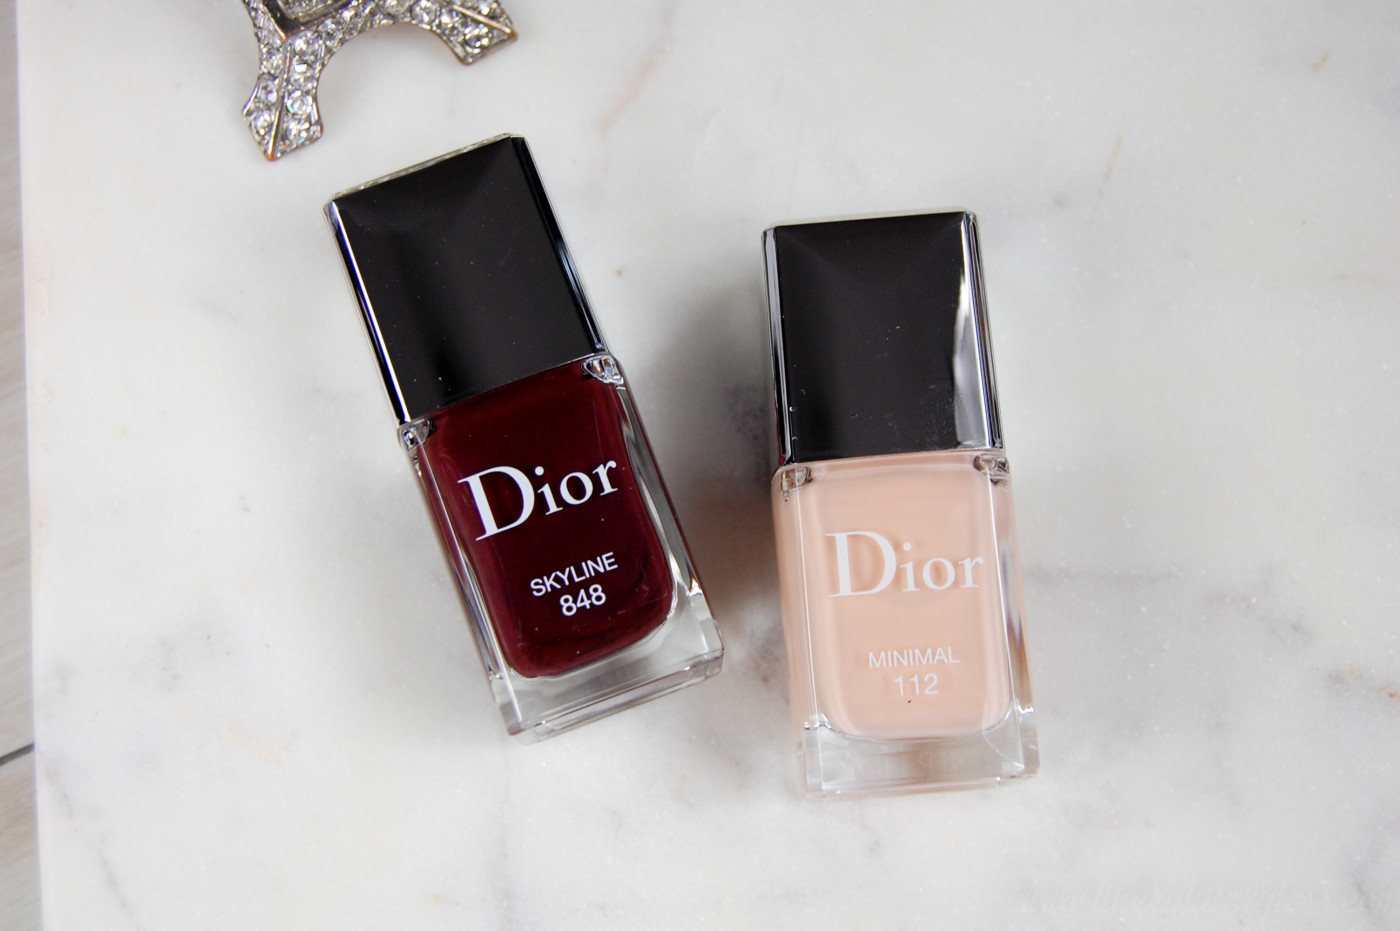 dior fall 2016, dior fall 2016 review, dior fall 2016 swatches, dior skyline collection, dior skyline swatches, skyline photos, skyline swatches, luxury beauty 2016, fall 2016 beauty trends, fall 2016 beauty collection, what makeup to wear for fall, dior 5 couleurs skyline, dior capital of light, capital of light swatches, dior parisian sky, dior parisian sky swatches, dior lip pomade, diorblush light & contour, sculpting stick, contour stick, dior contour stick, dior color correction, colour correcting stick, face color correction, dior vernis skyline, dior vernis minimal